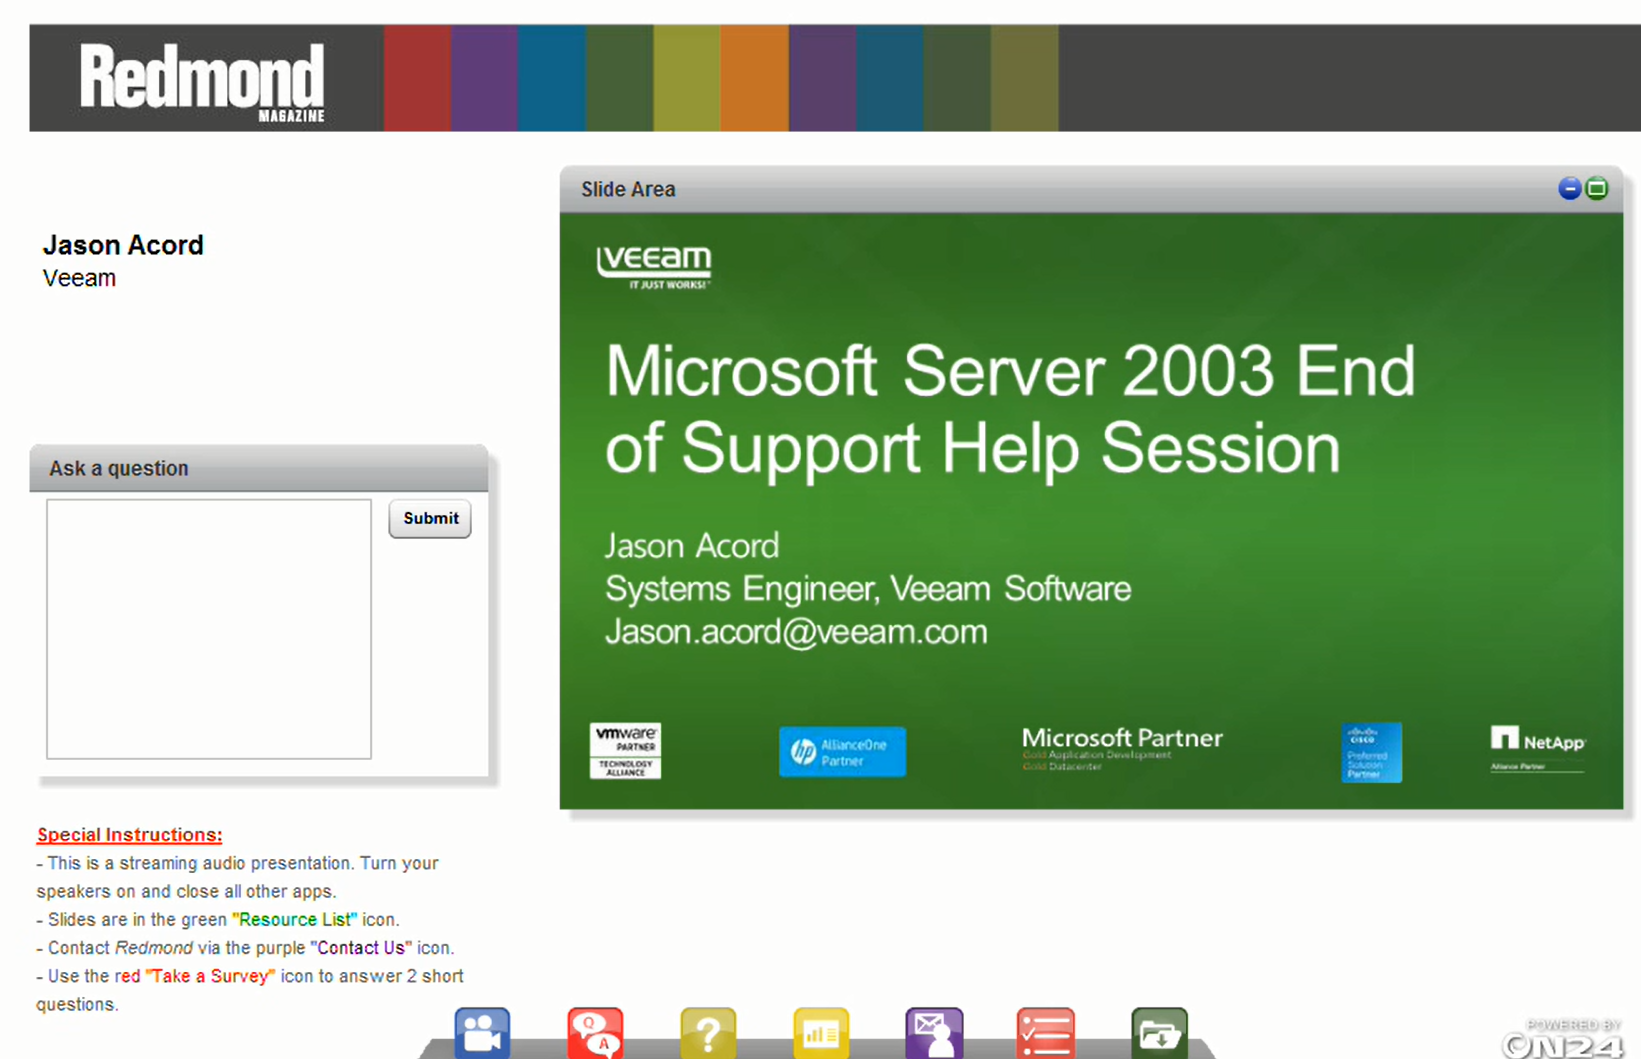 Windows Server 2003 End of Support Help Session